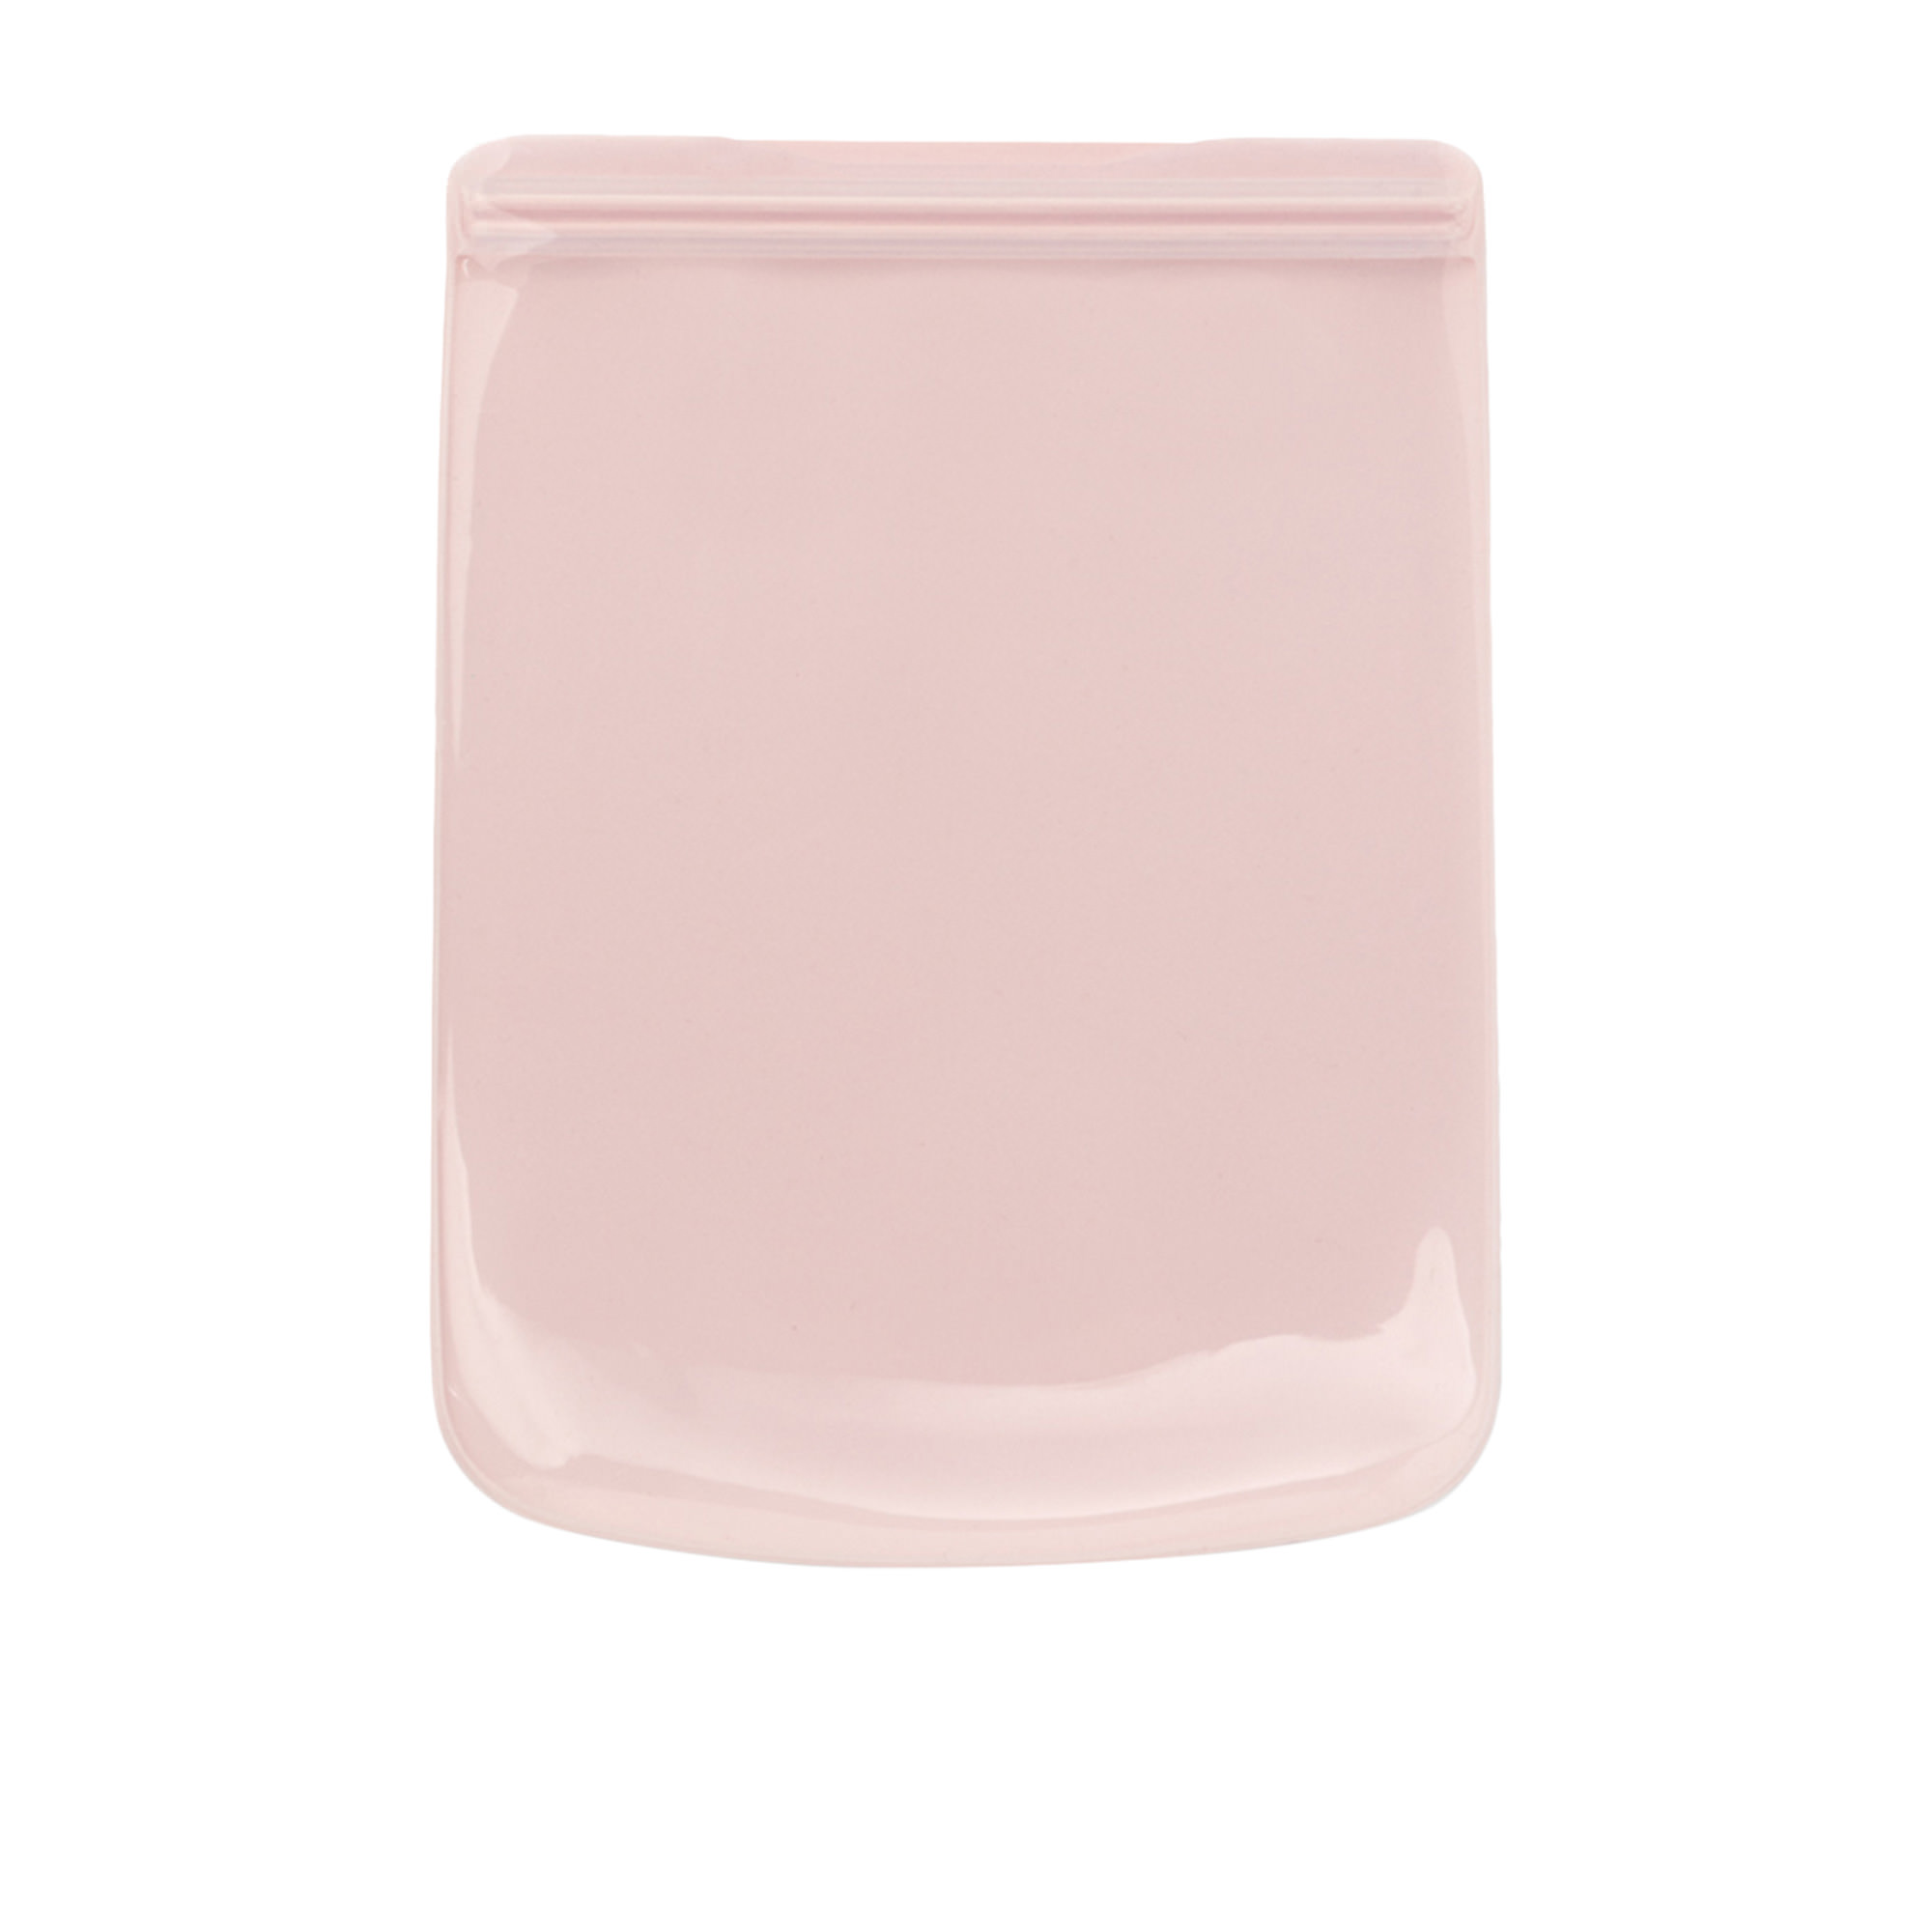 W&P Porter Reusable Silicone Bag 1.4L Blush